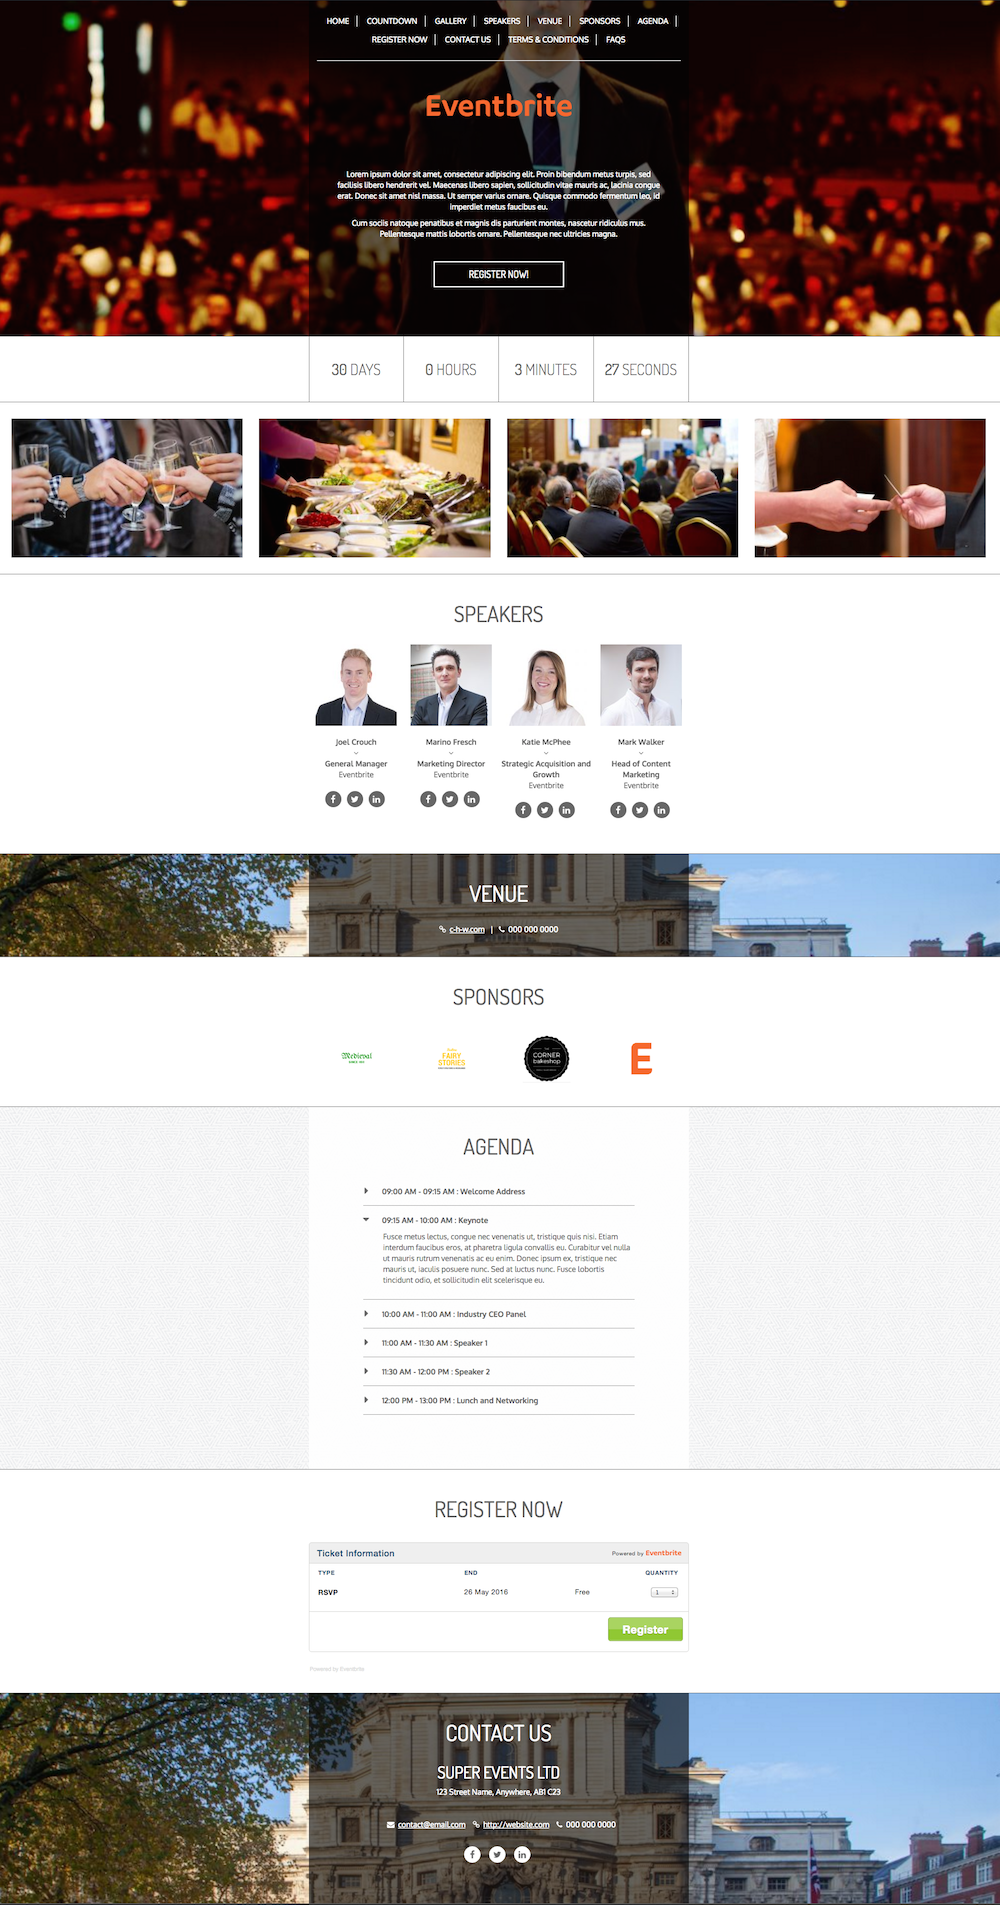 Free, Beautiful, and Responsive Event WordPress Theme - Eventbrite